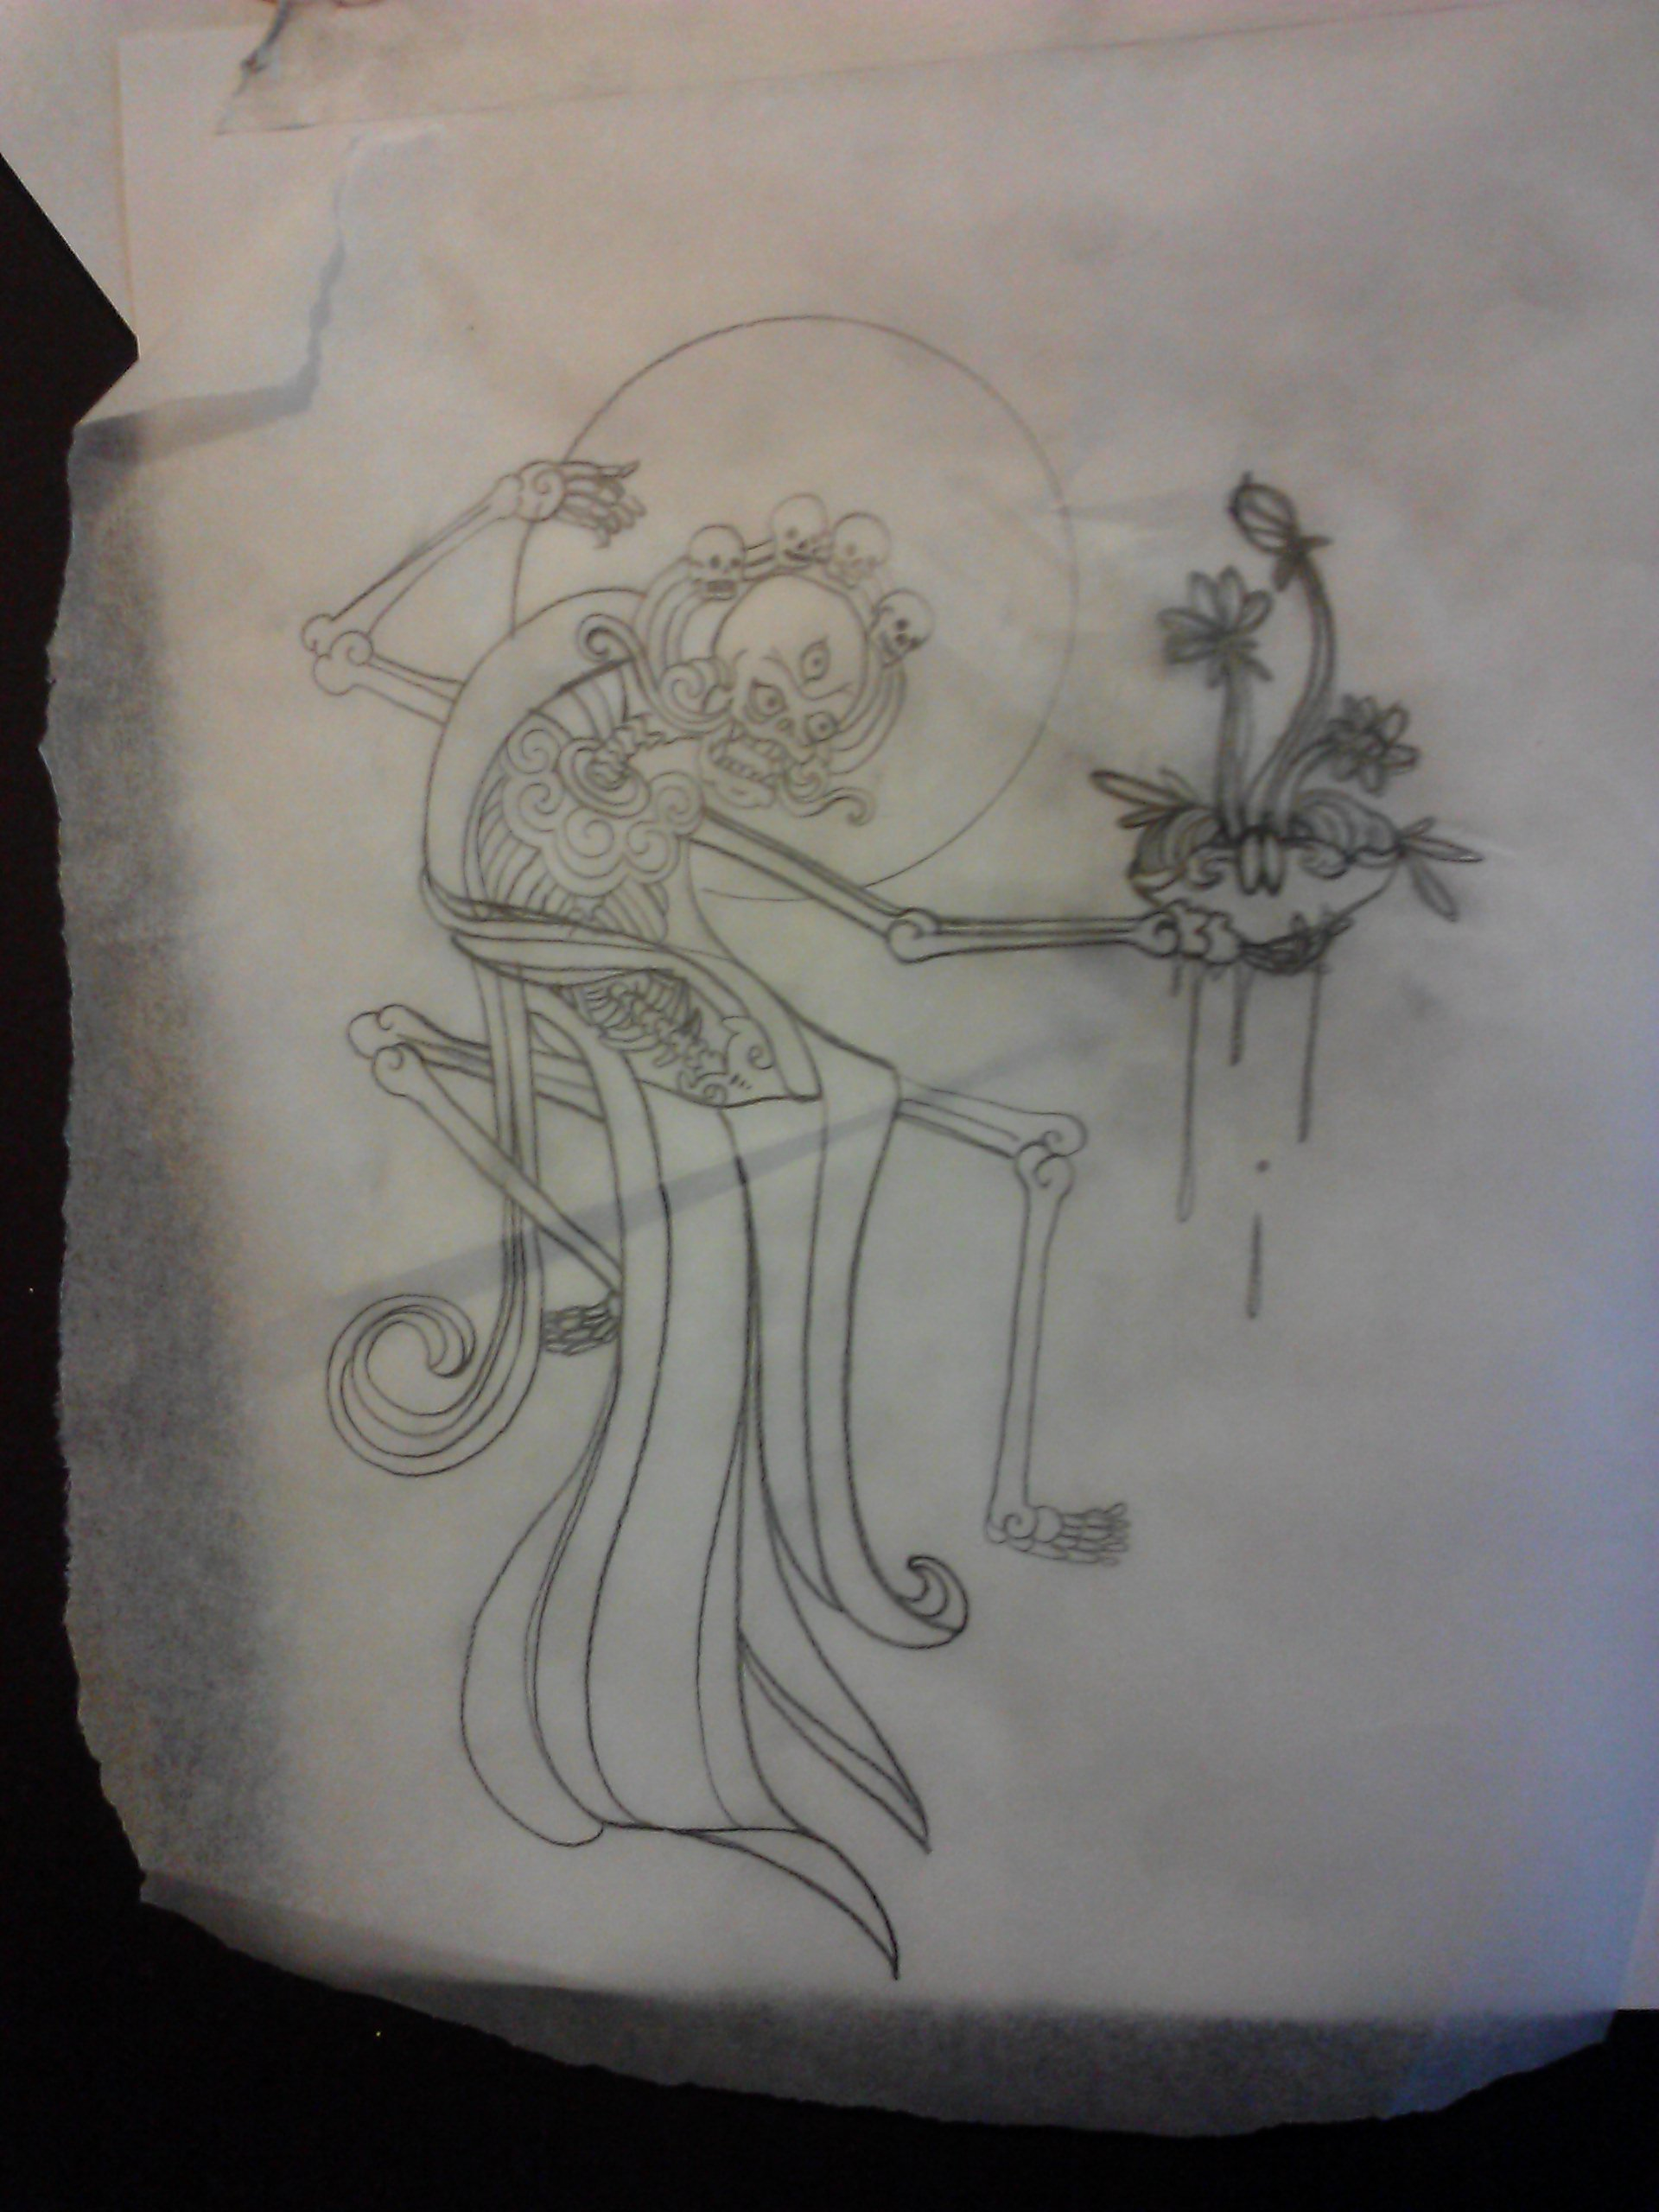 study for a thigh tattoo